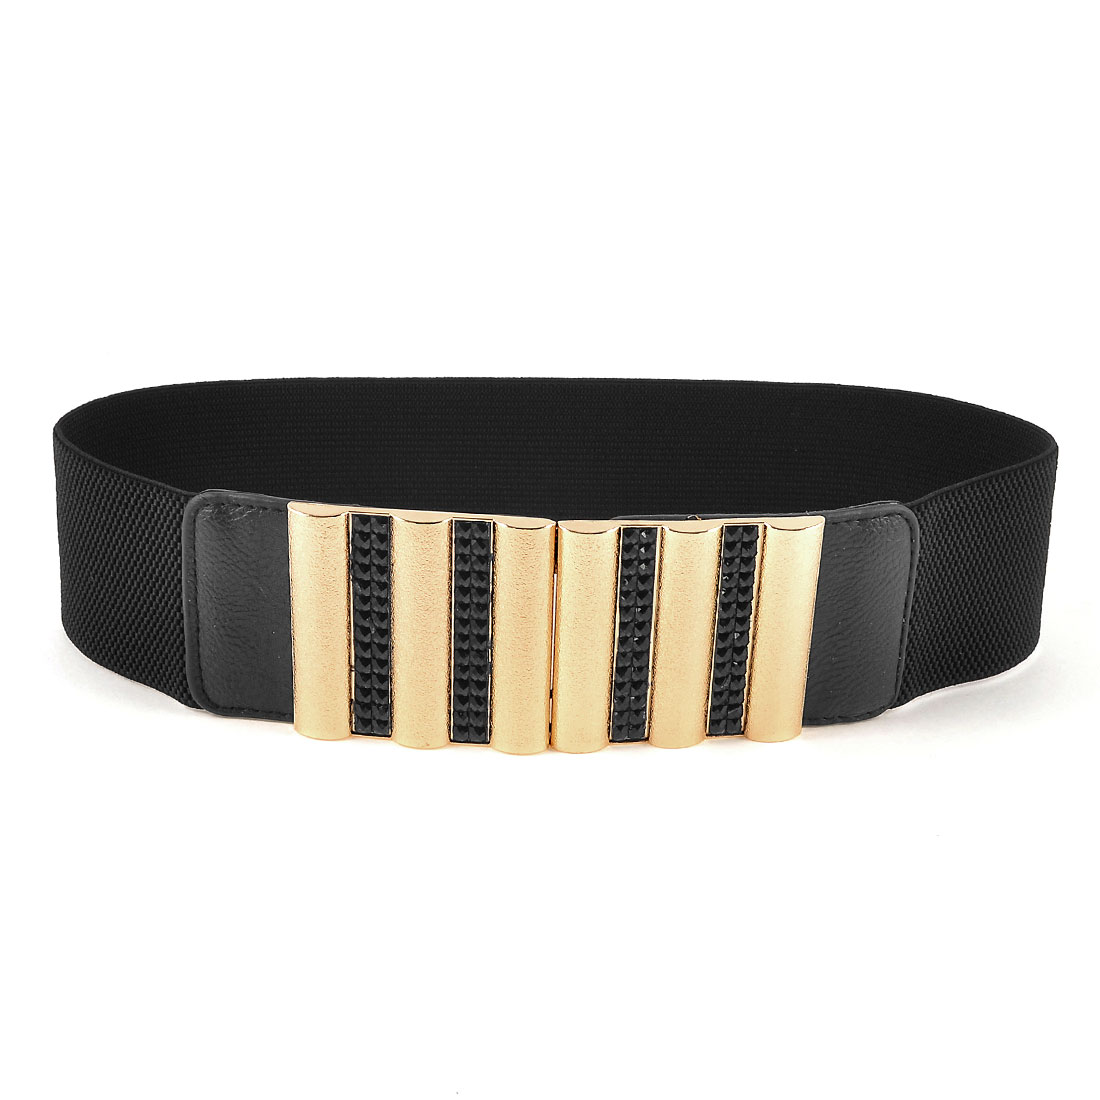 Women Interlock Buckle Black Plastic Beads Inlaid Elastic Waist Belt Waistband